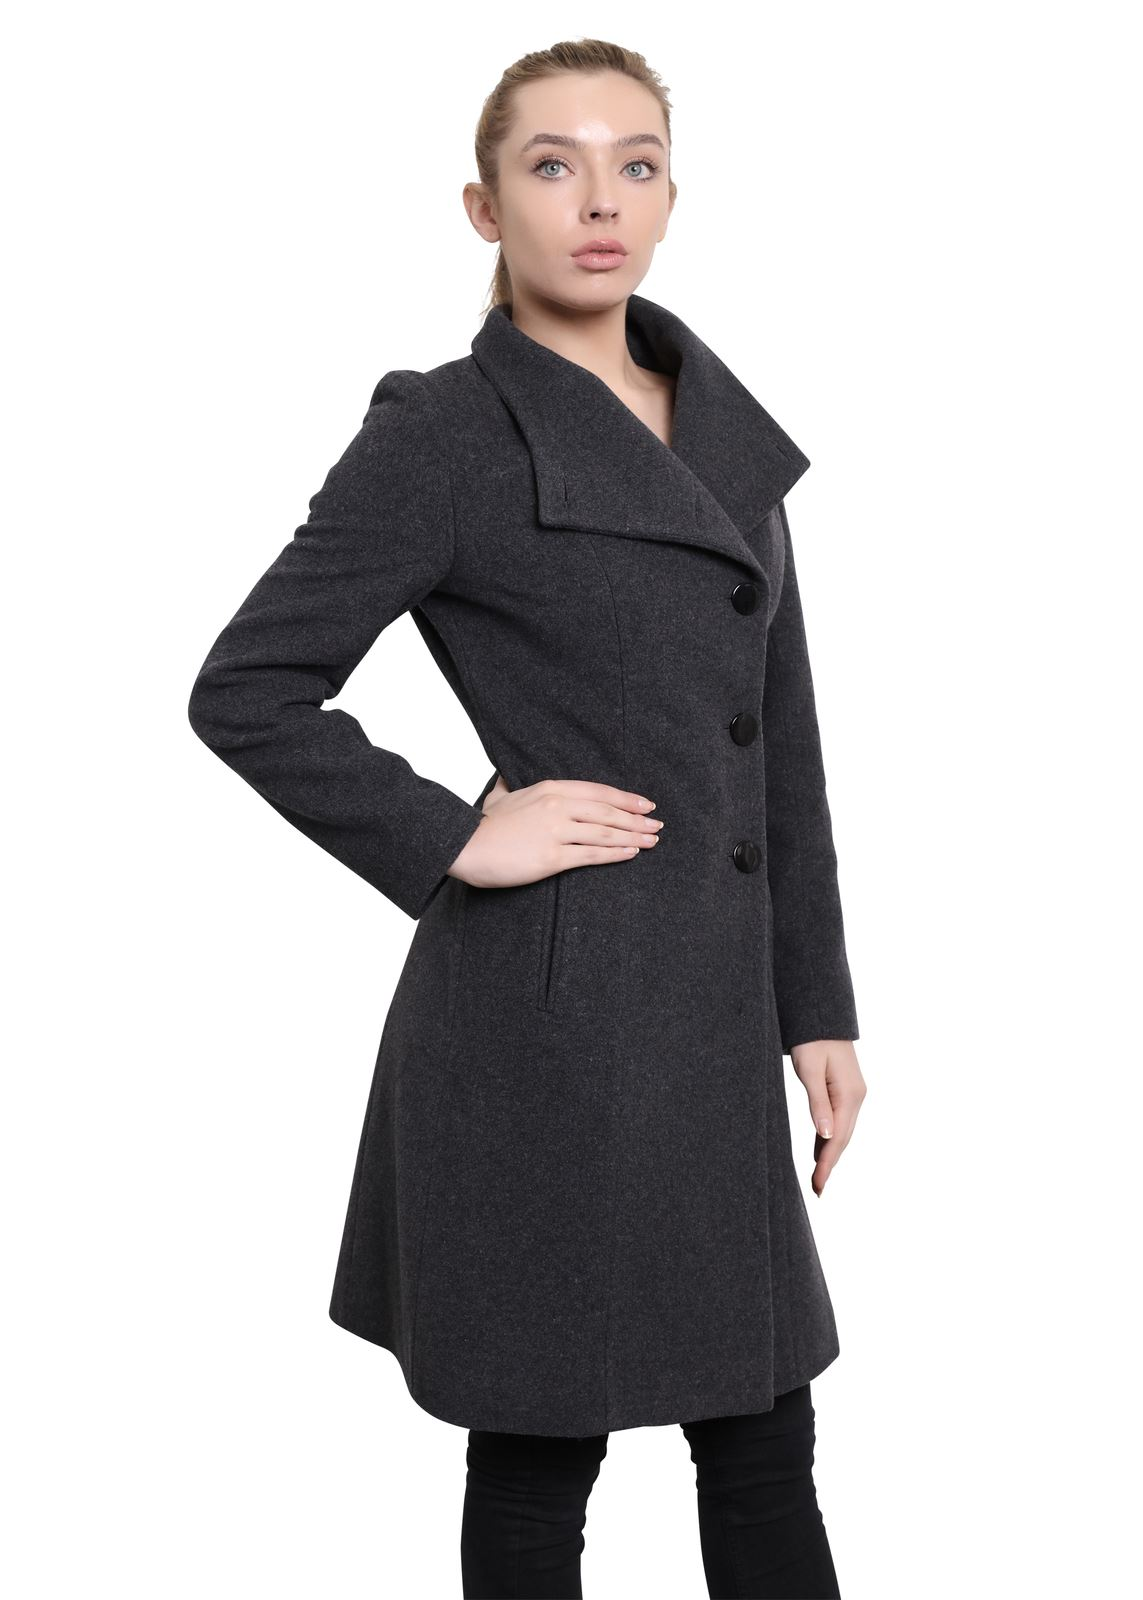 De-La-Creme-Womens-Funnel-Neck-Wool-amp-Cashmere-Blend-Keep-It-Simple-Coat thumbnail 13